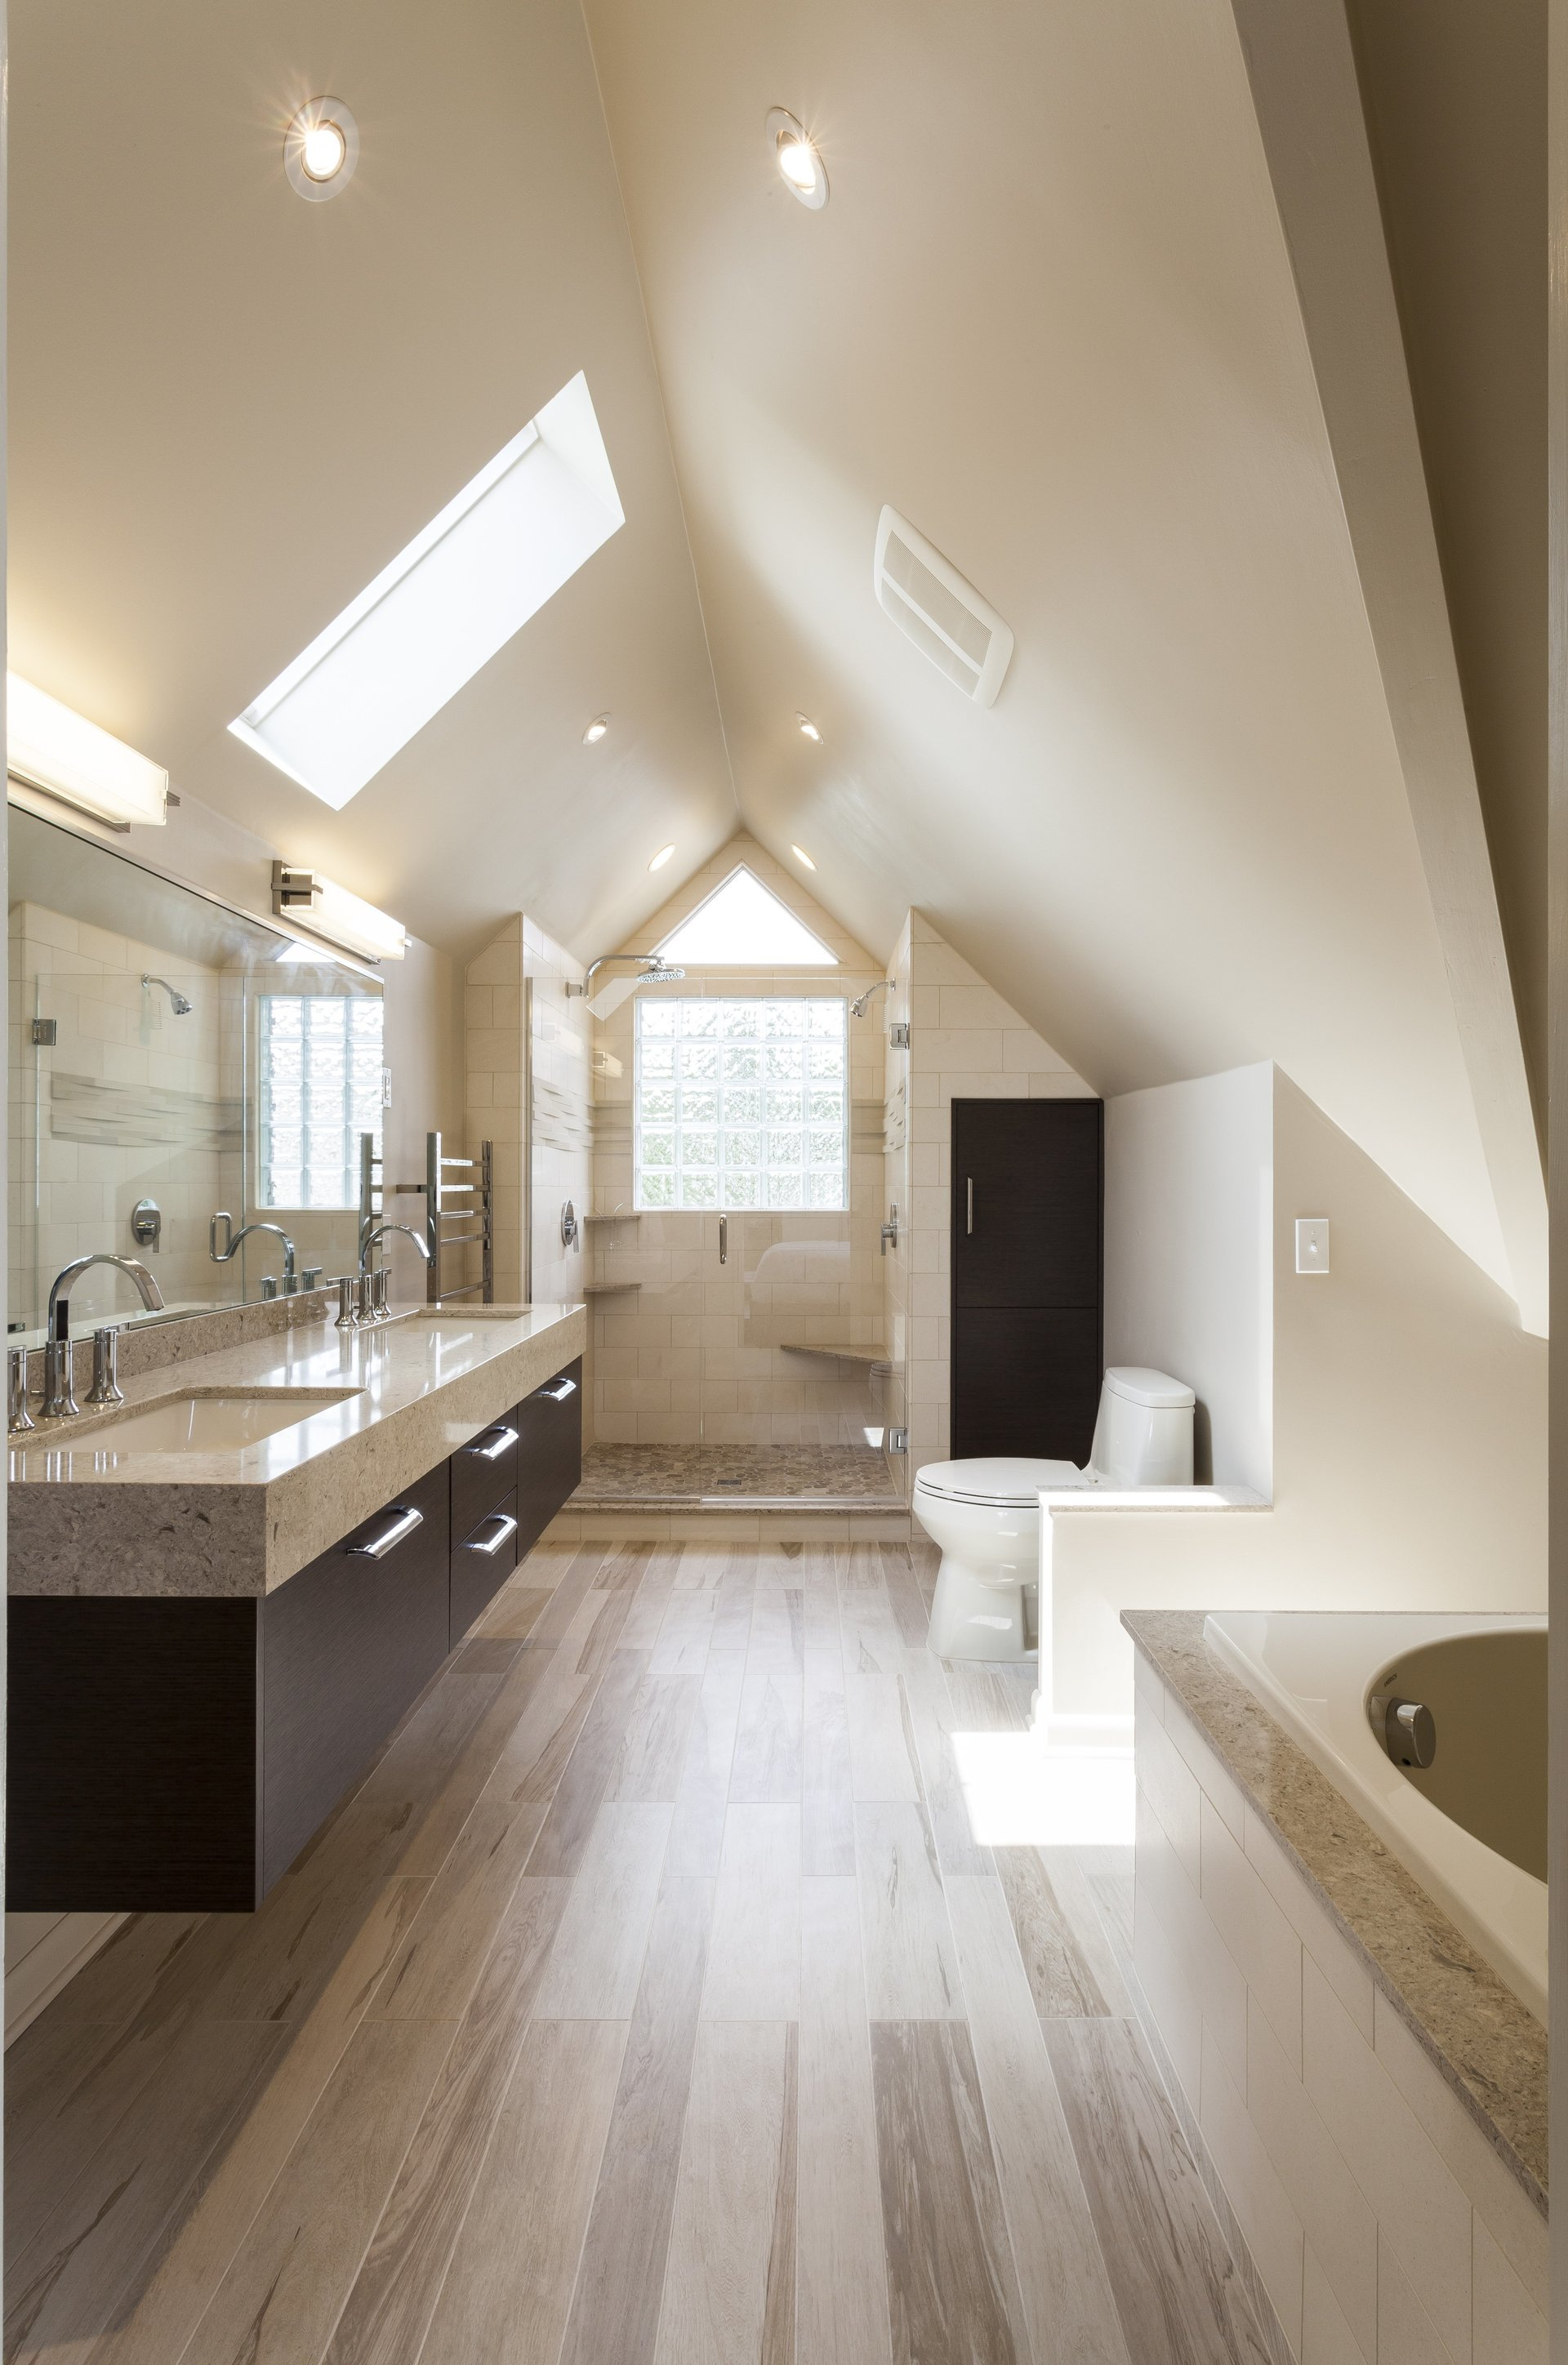 Bathroom Design Services In Pittsburgh Pa Jacob Evans